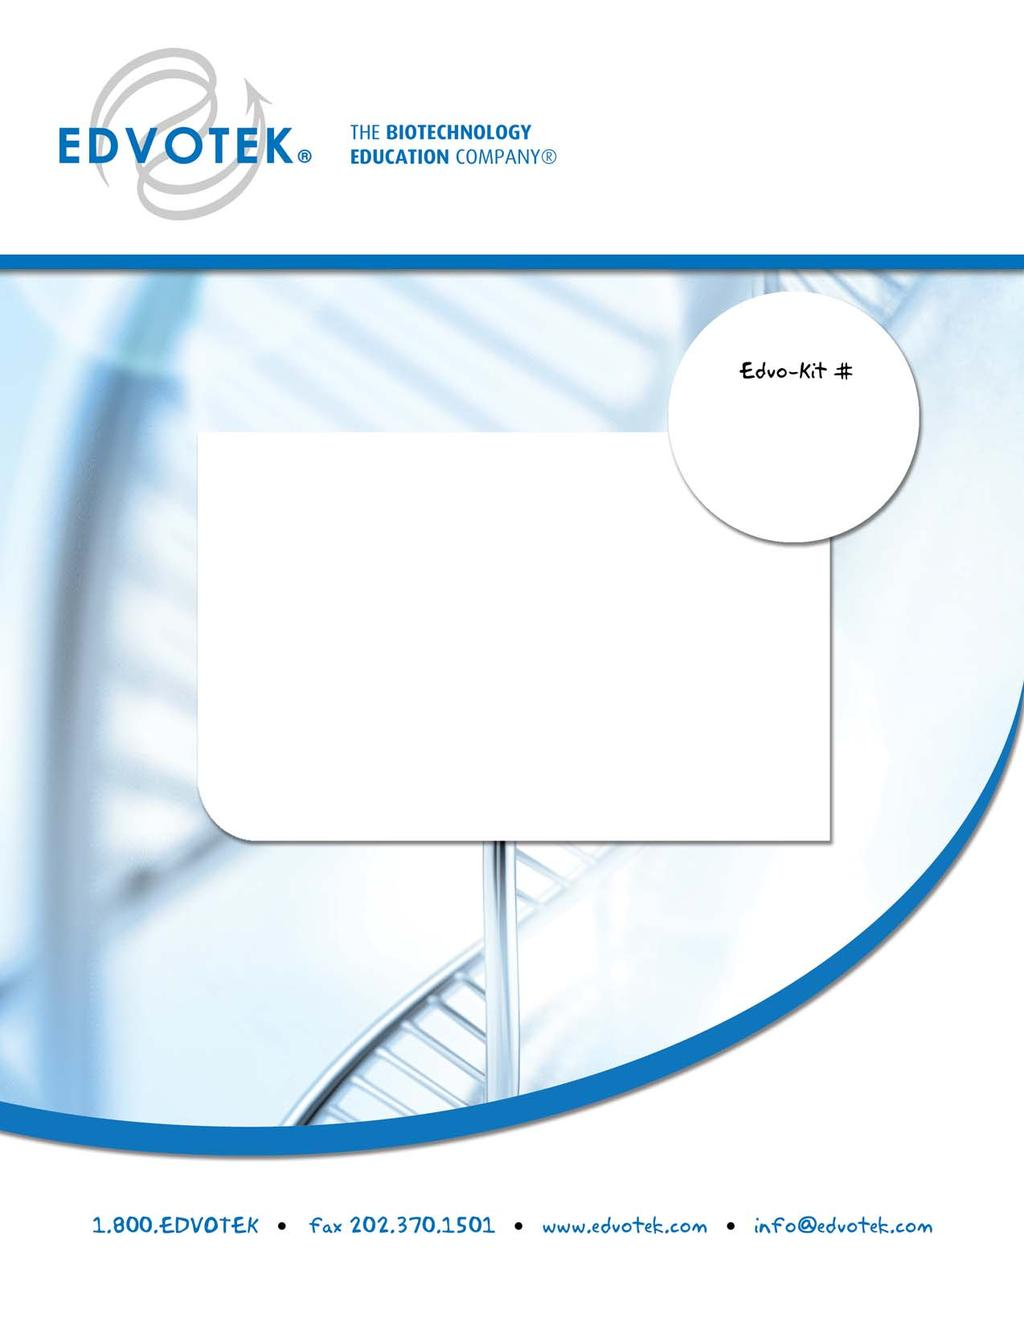 Edvo-Kit #101 Principles and Practice of Agarose Gel Electrophoresis Experiment Objective: The objective of this experiment is to develop a basic understanding of electrophoretic